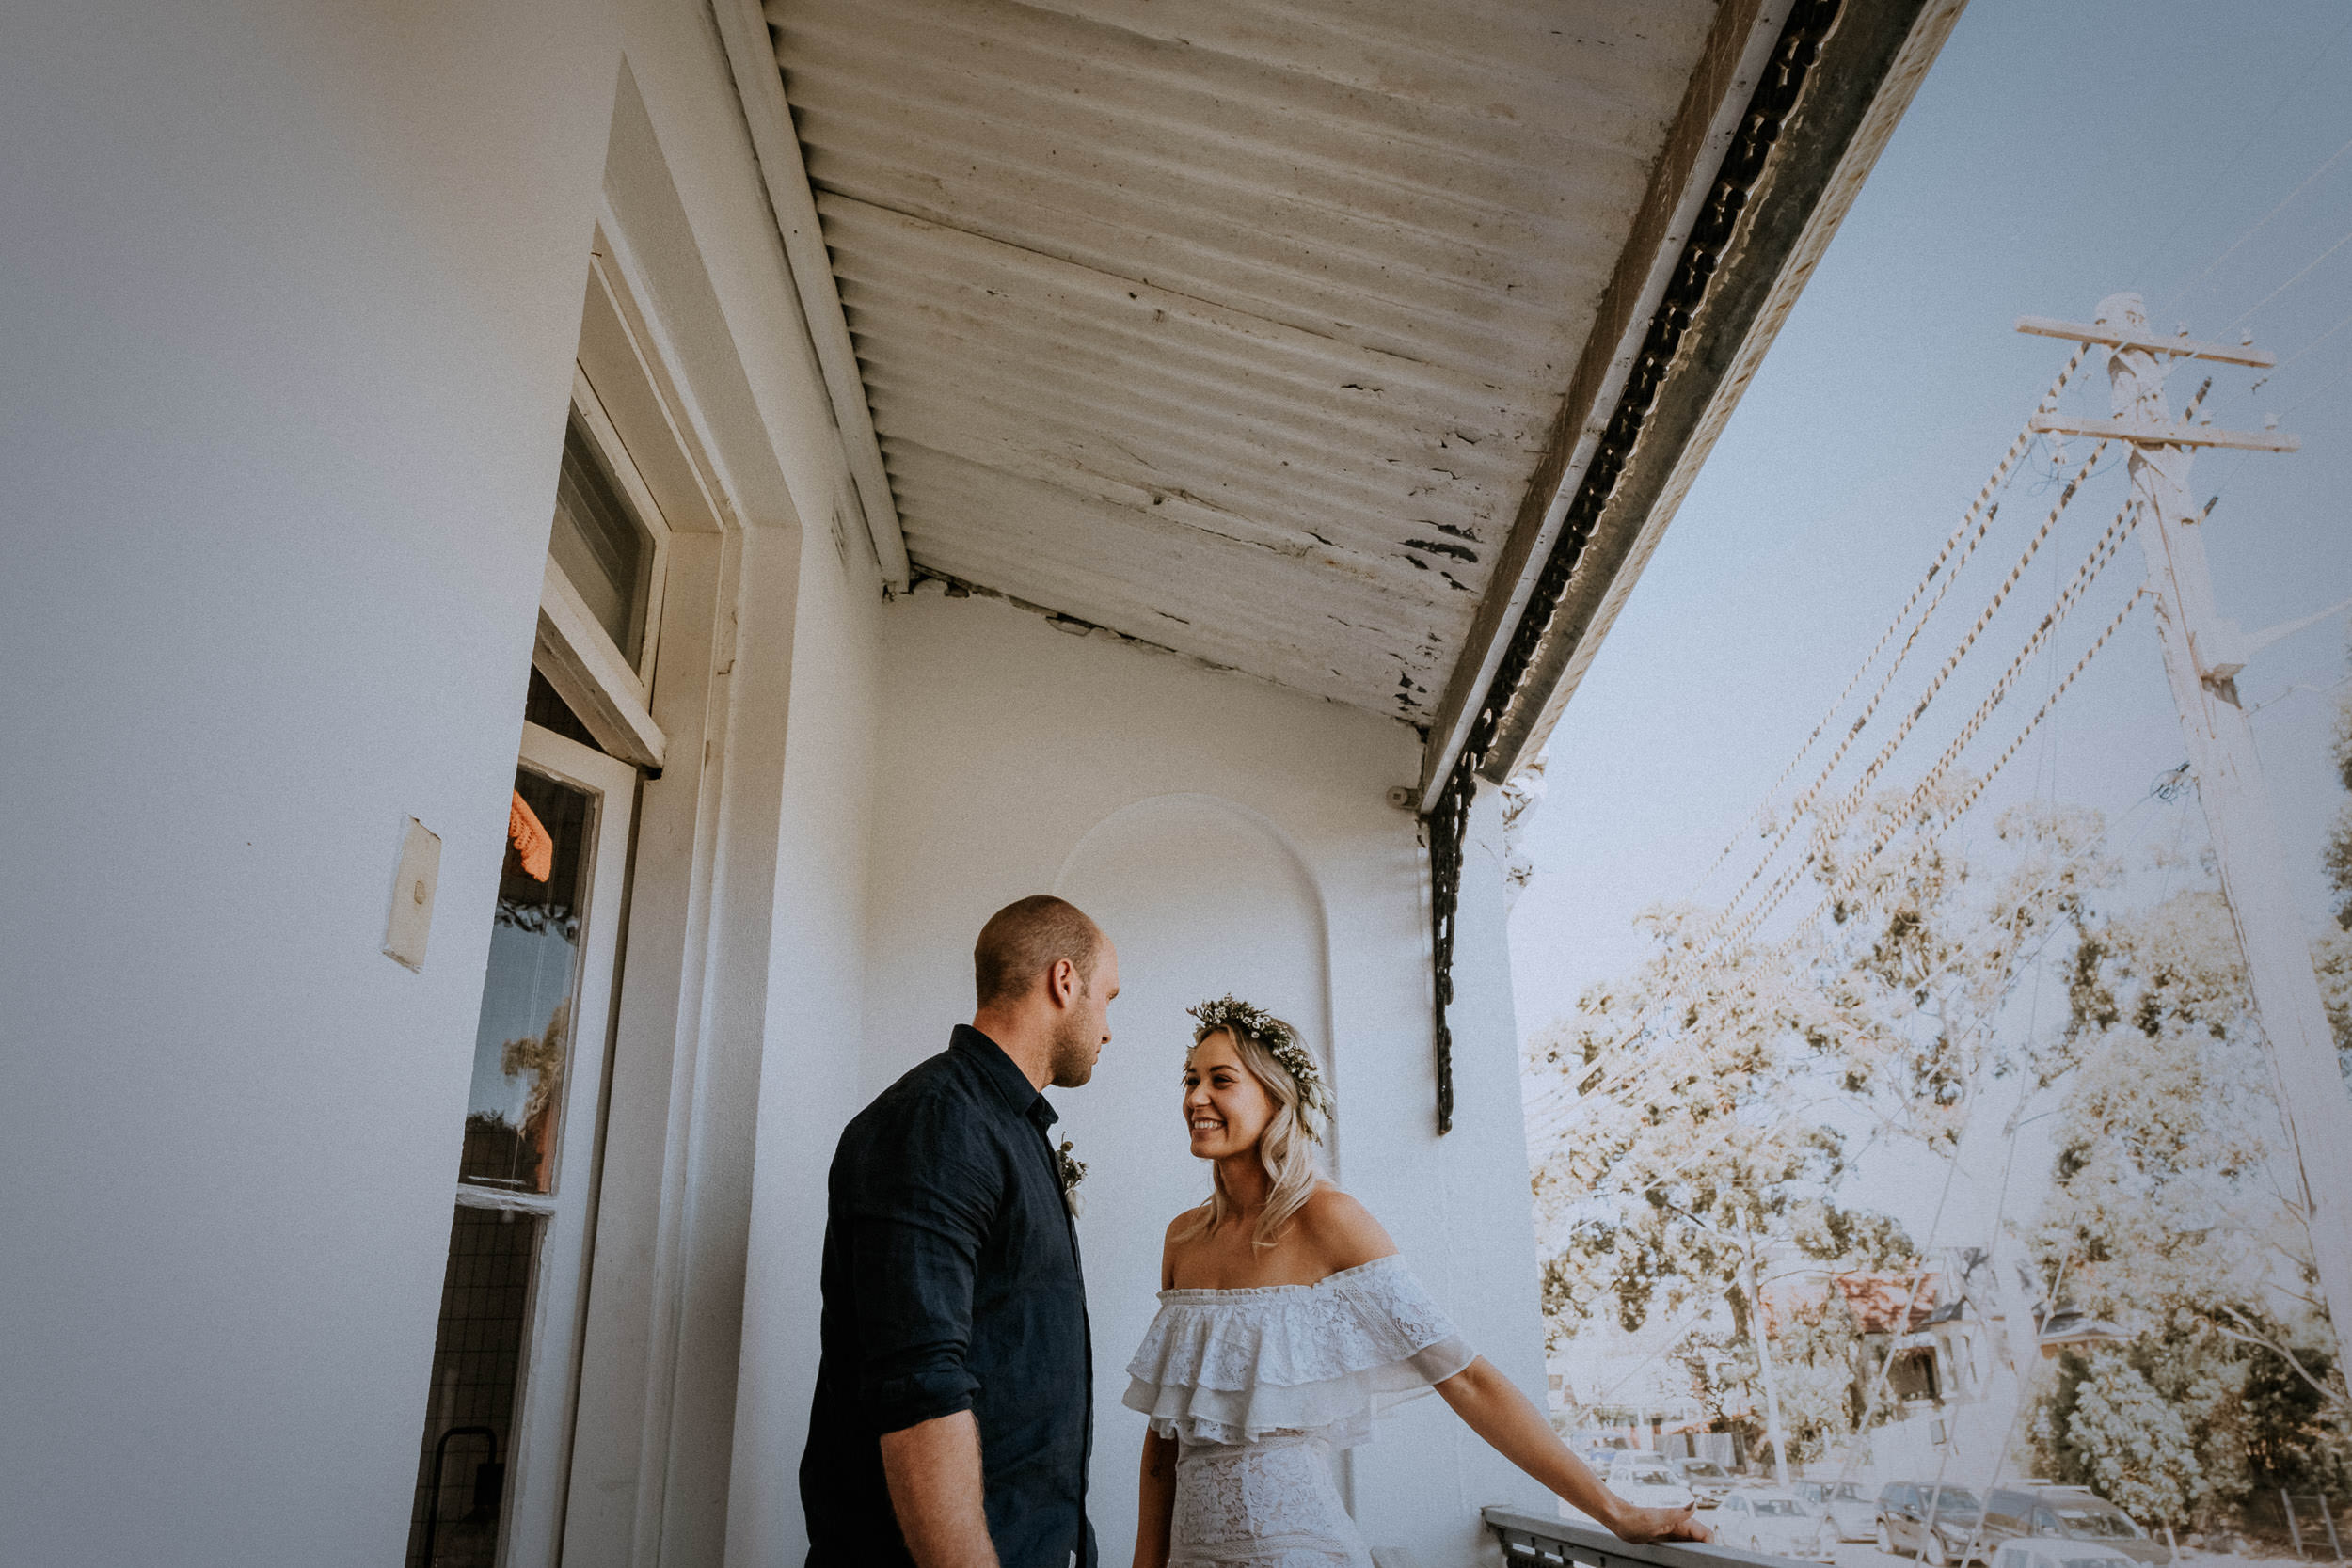 kings _ thieves - beth _ corey backyard airbnb elopement sydney - submission -355.jpg